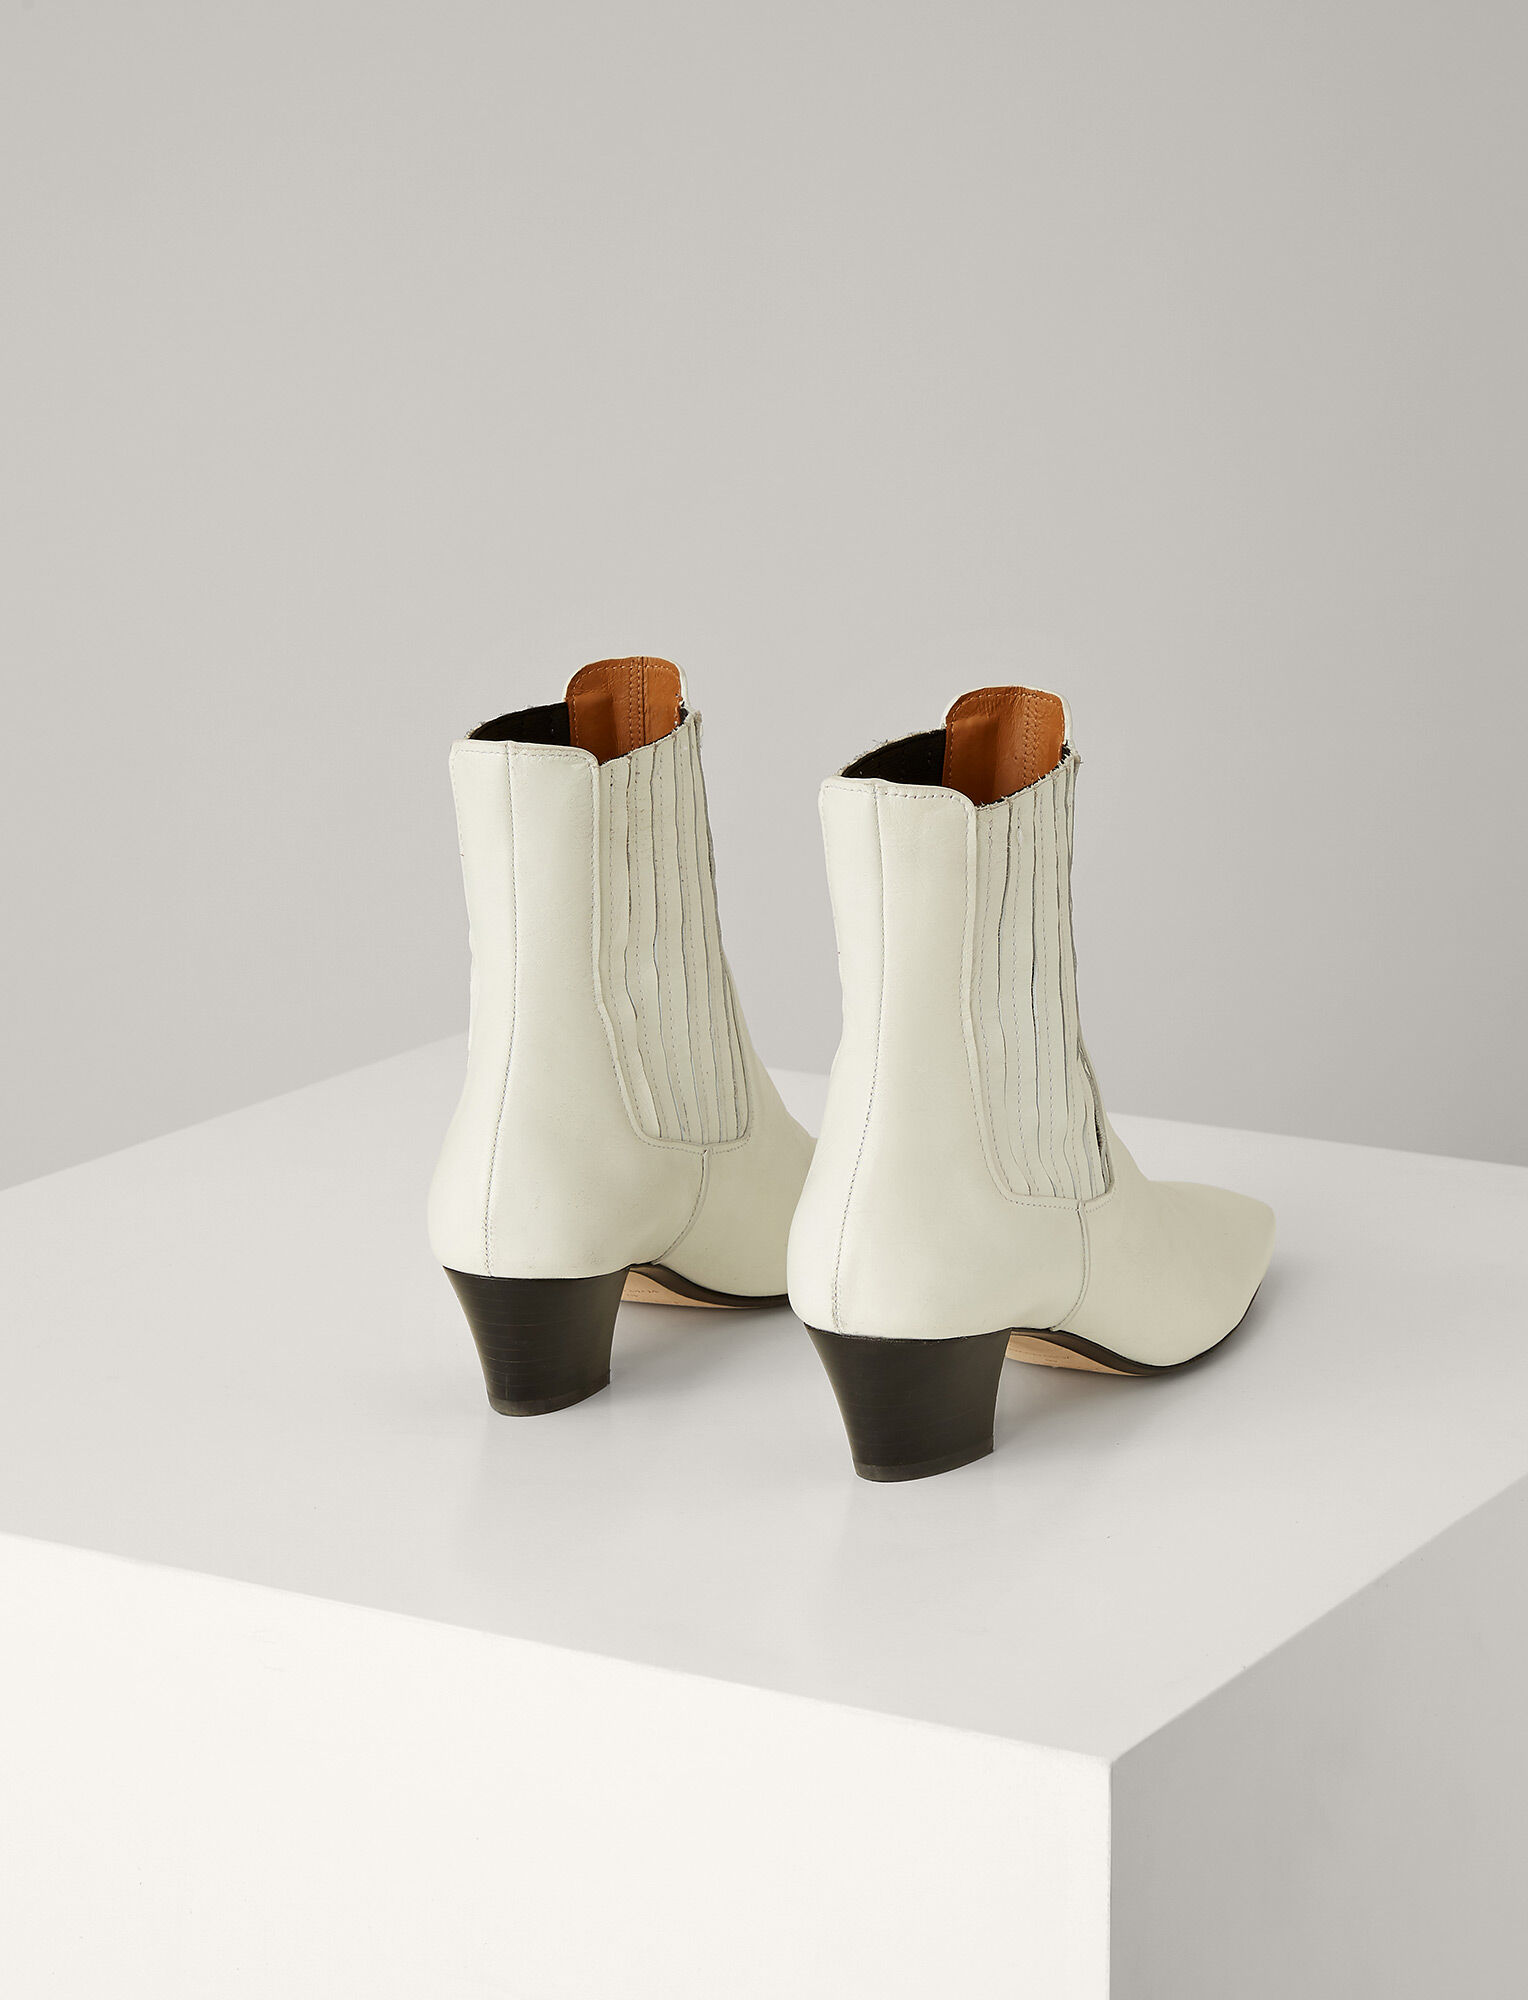 Joseph, Bettina Leather Boots, in WHITE